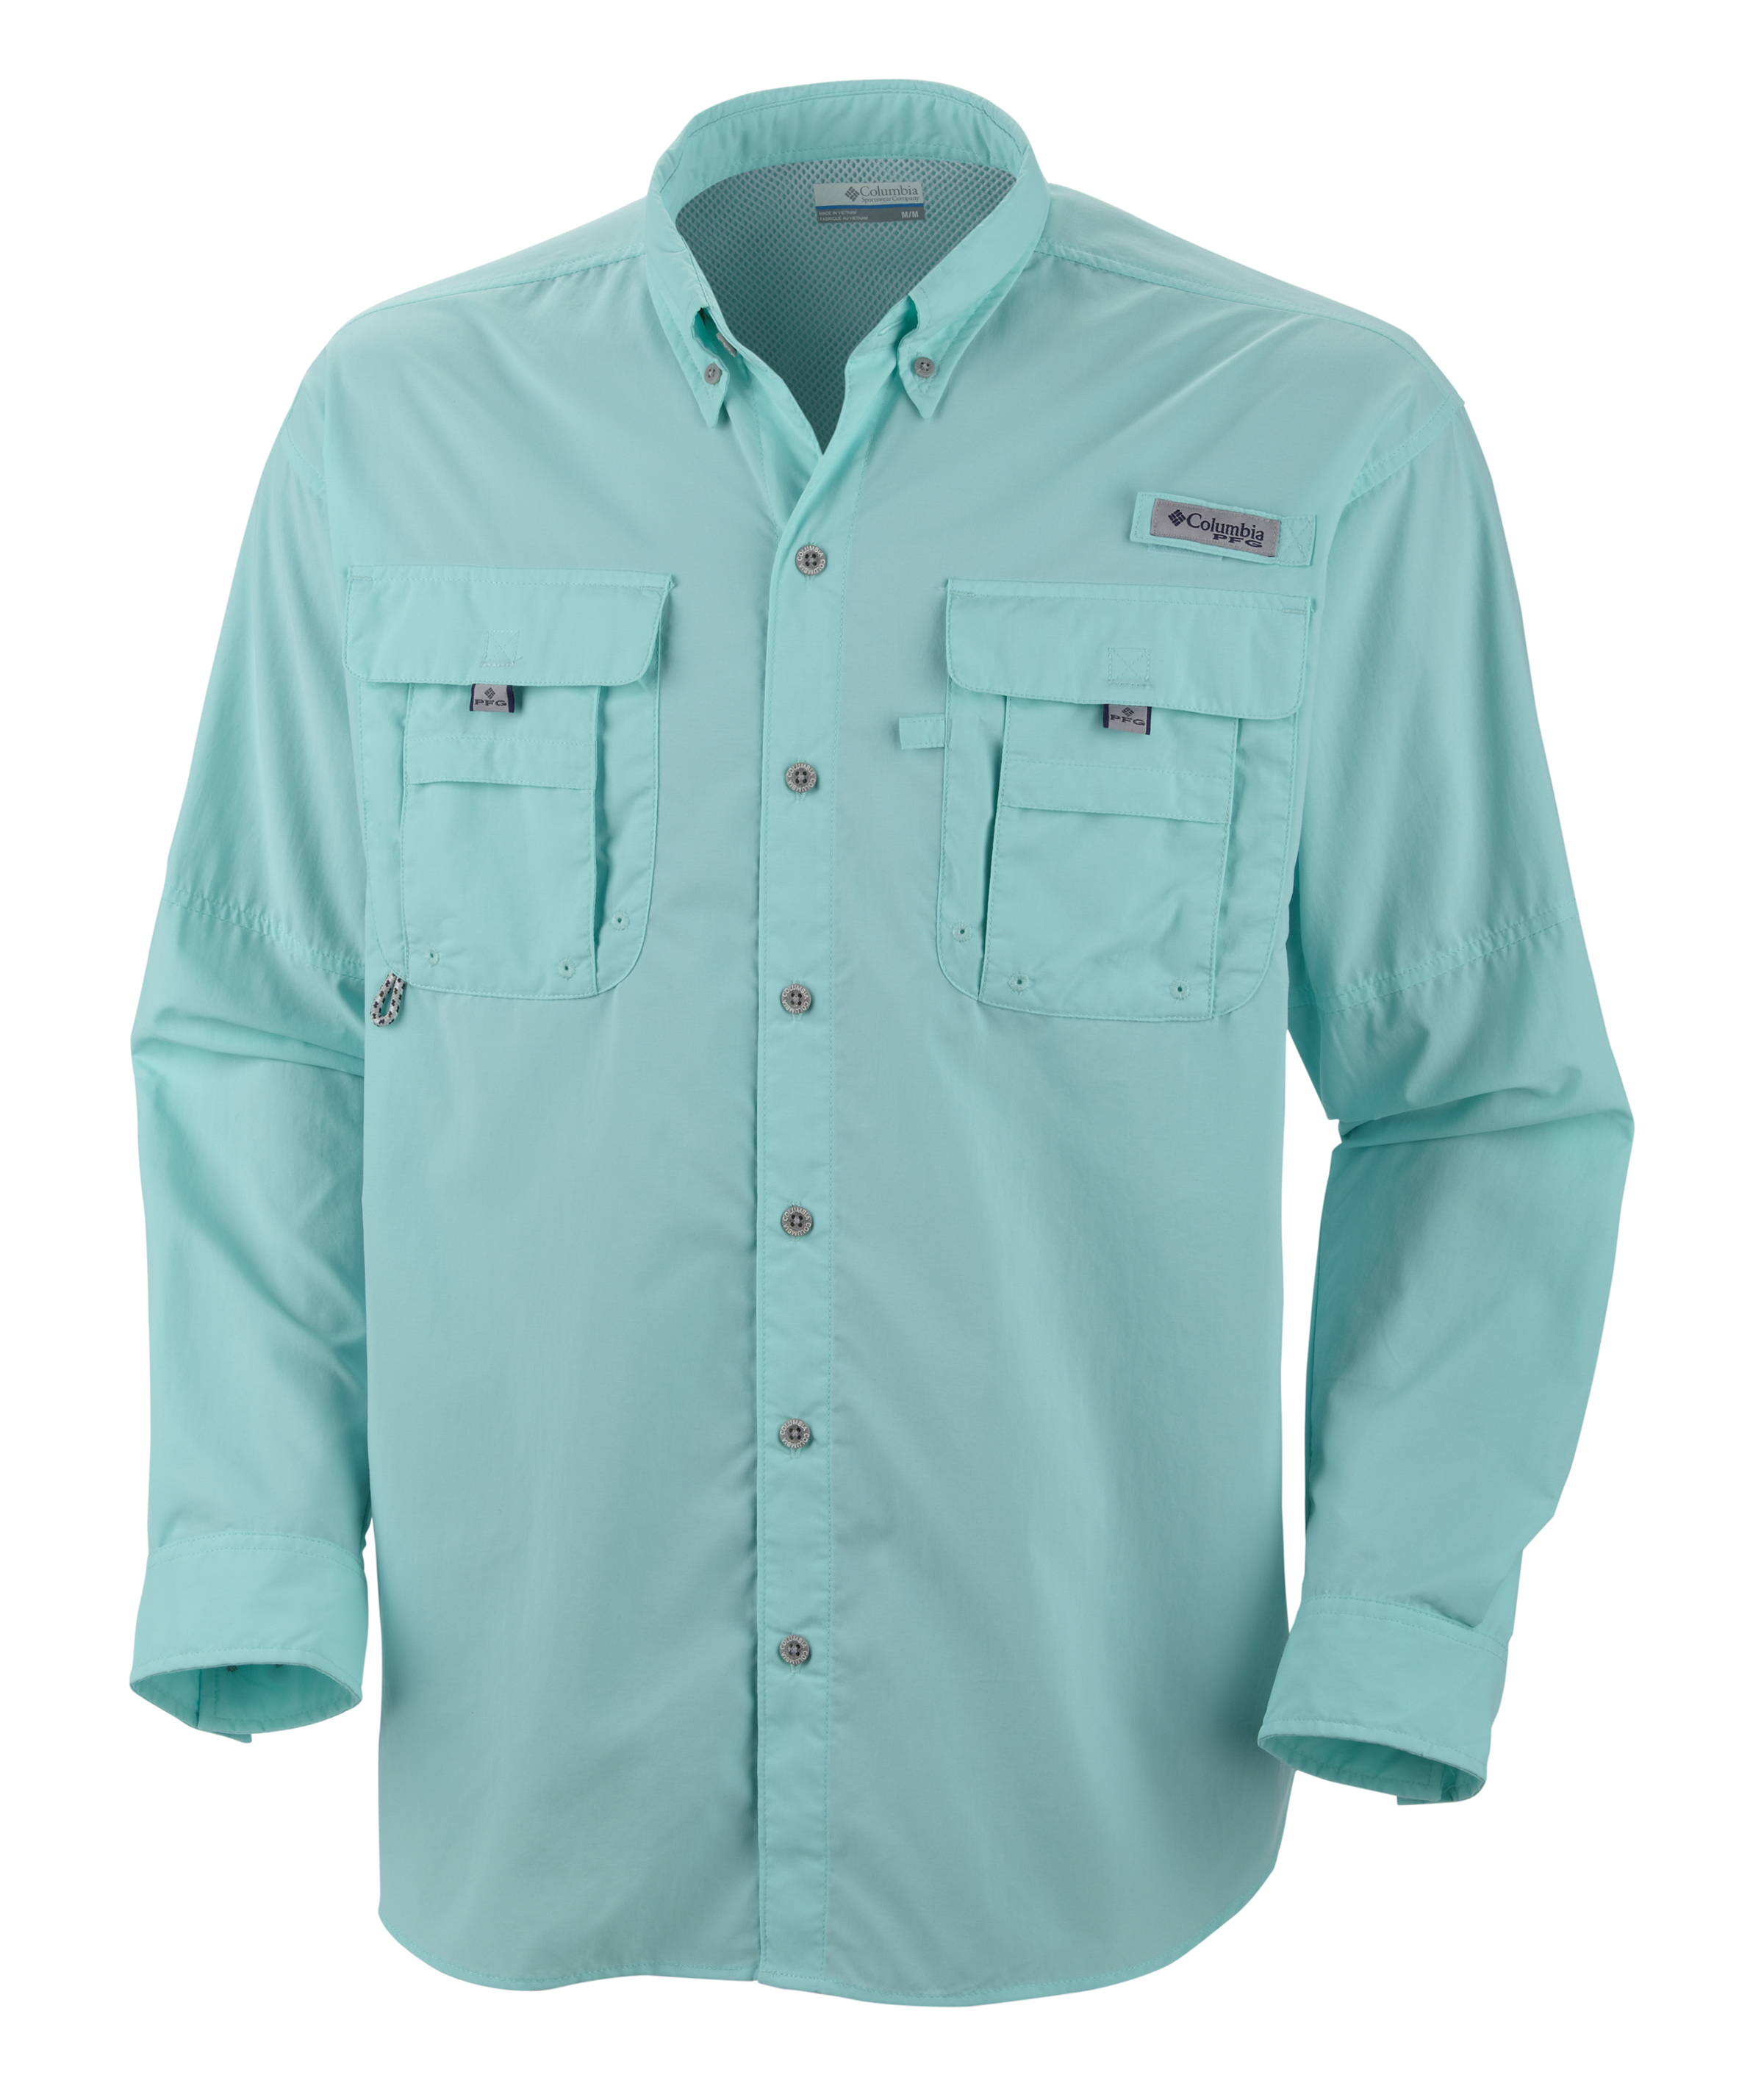 Columbia men 39 s bahama ii long sleeve shirt 7048 for Columbia shirts womens pfg